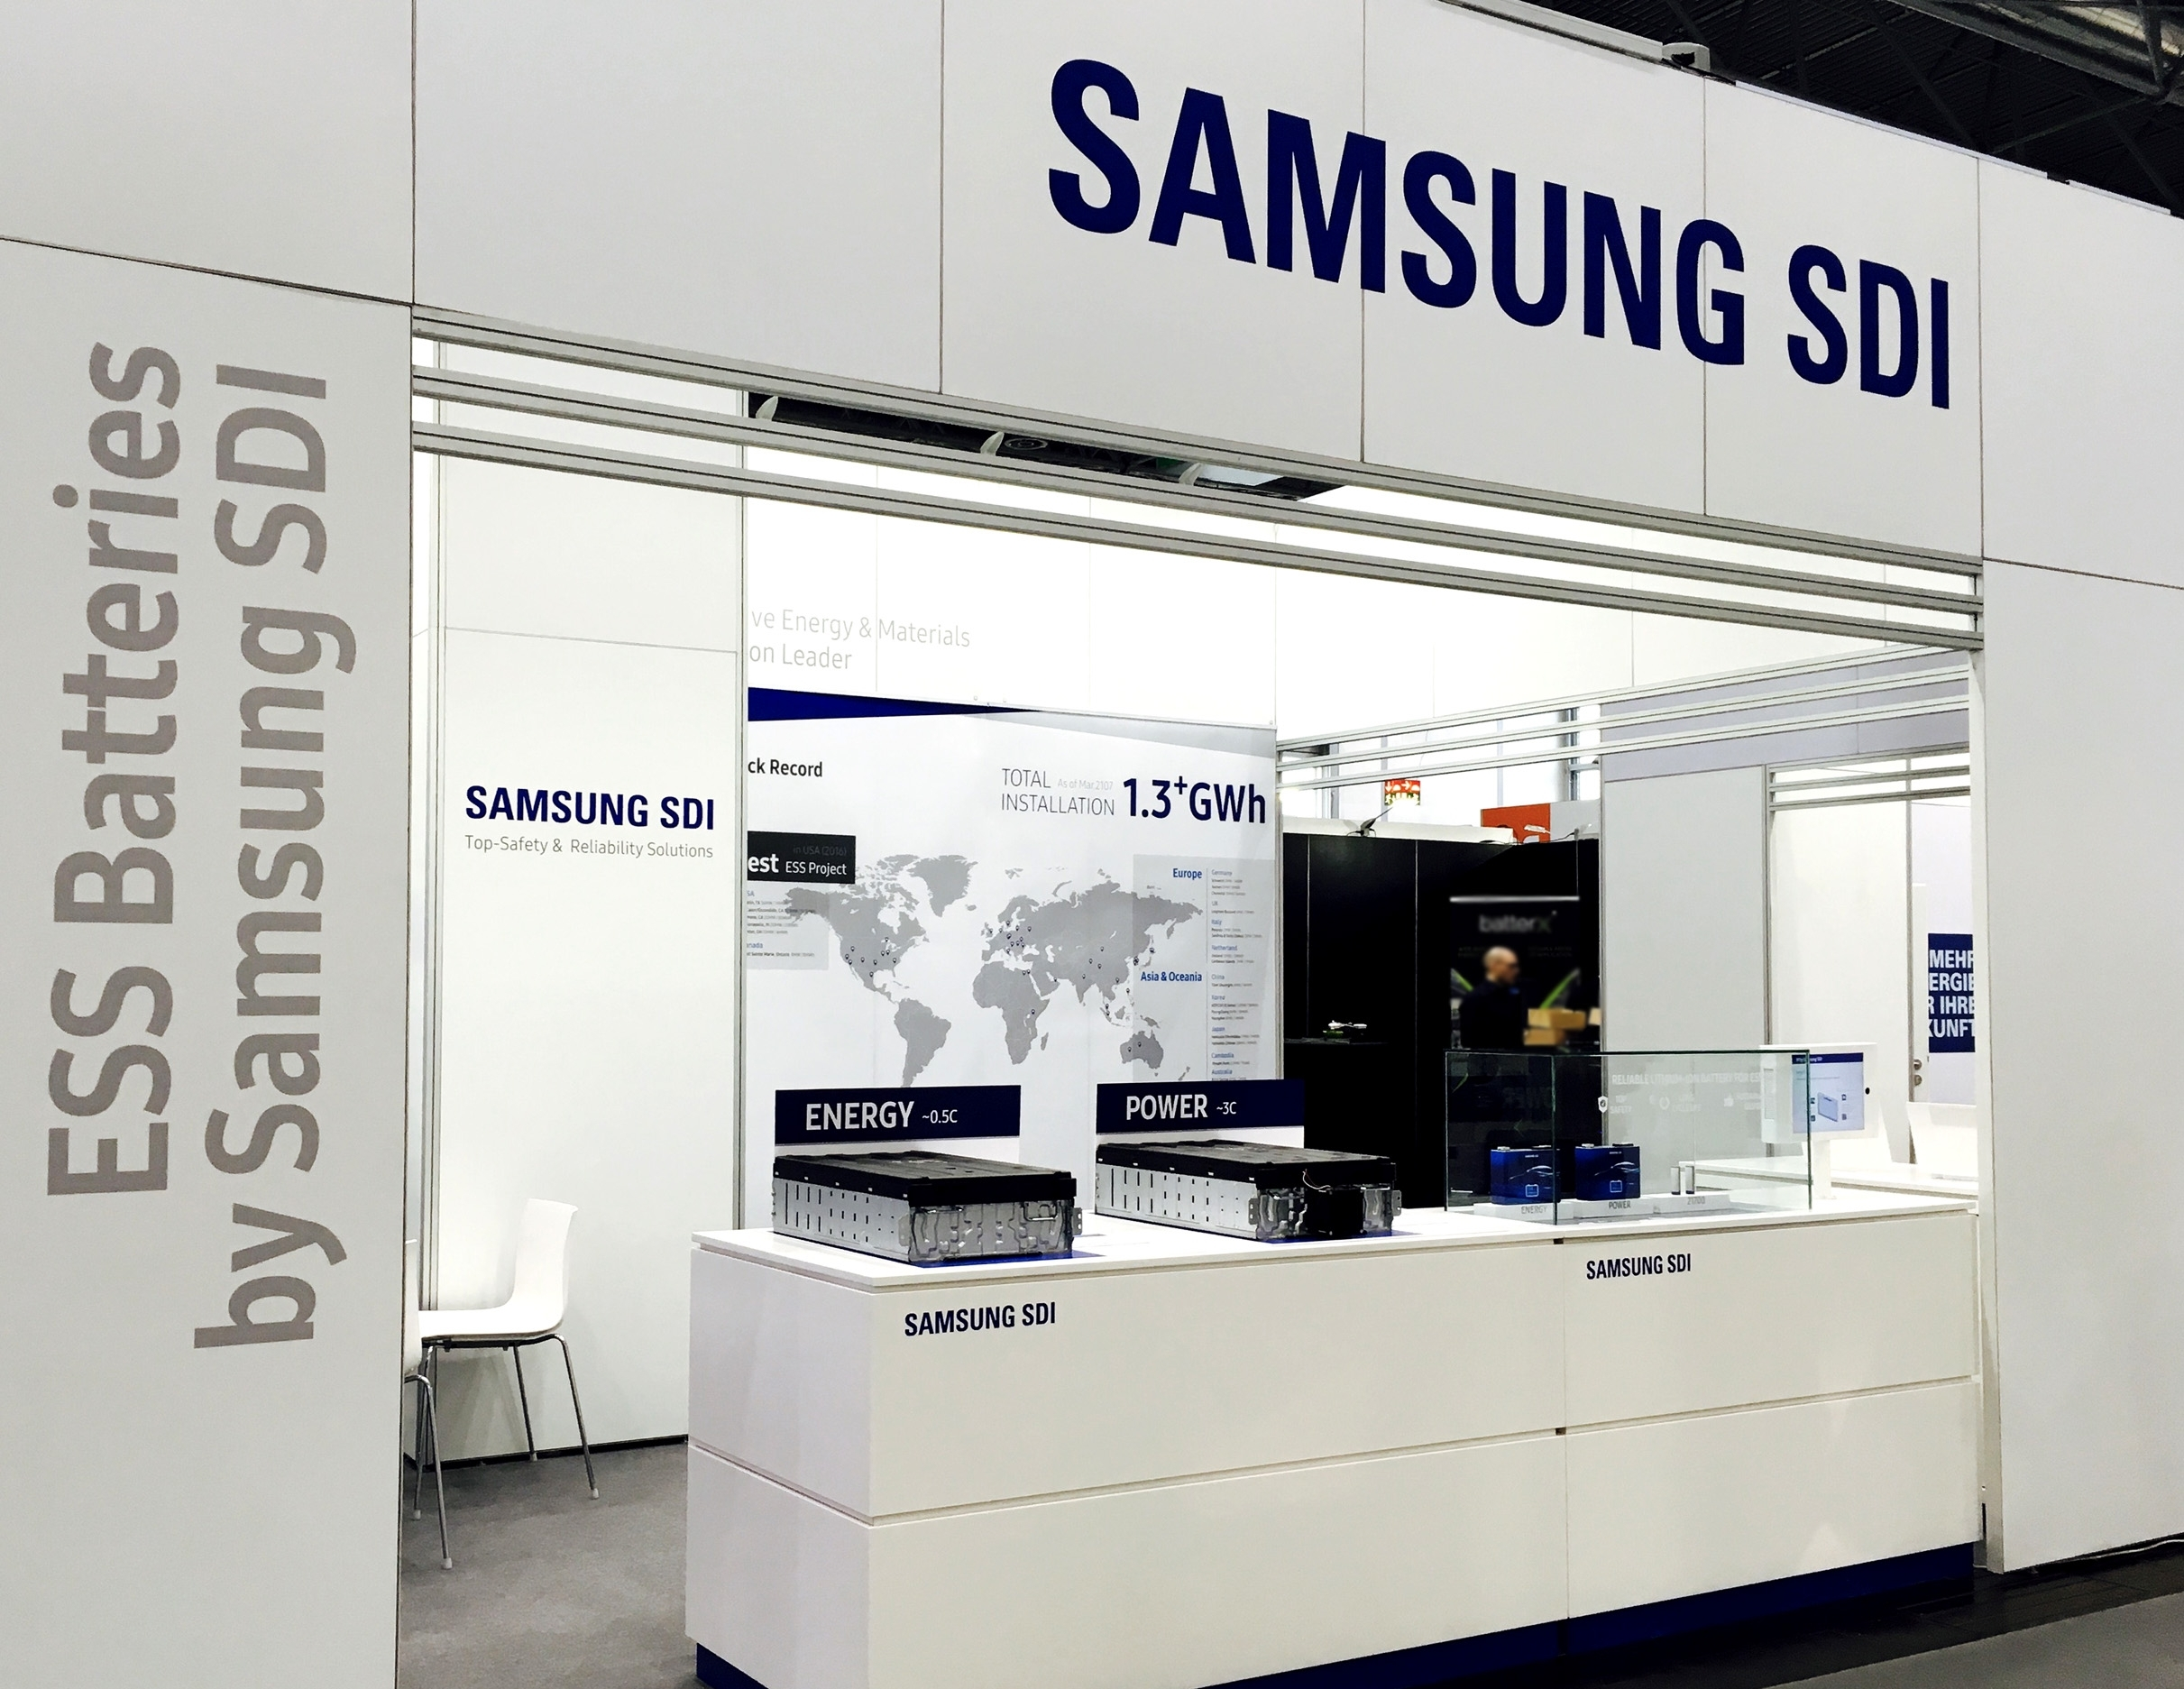 Samsung SDI presented new lineup of its comprehensive ESS solutions at the Energy Storage Europe 2017. New ESS products, High-capacity E2 Model and High-power P3 Model, greatly increases the capacity and energy density by deploying innovative configurations. (Photo: Business Wire)